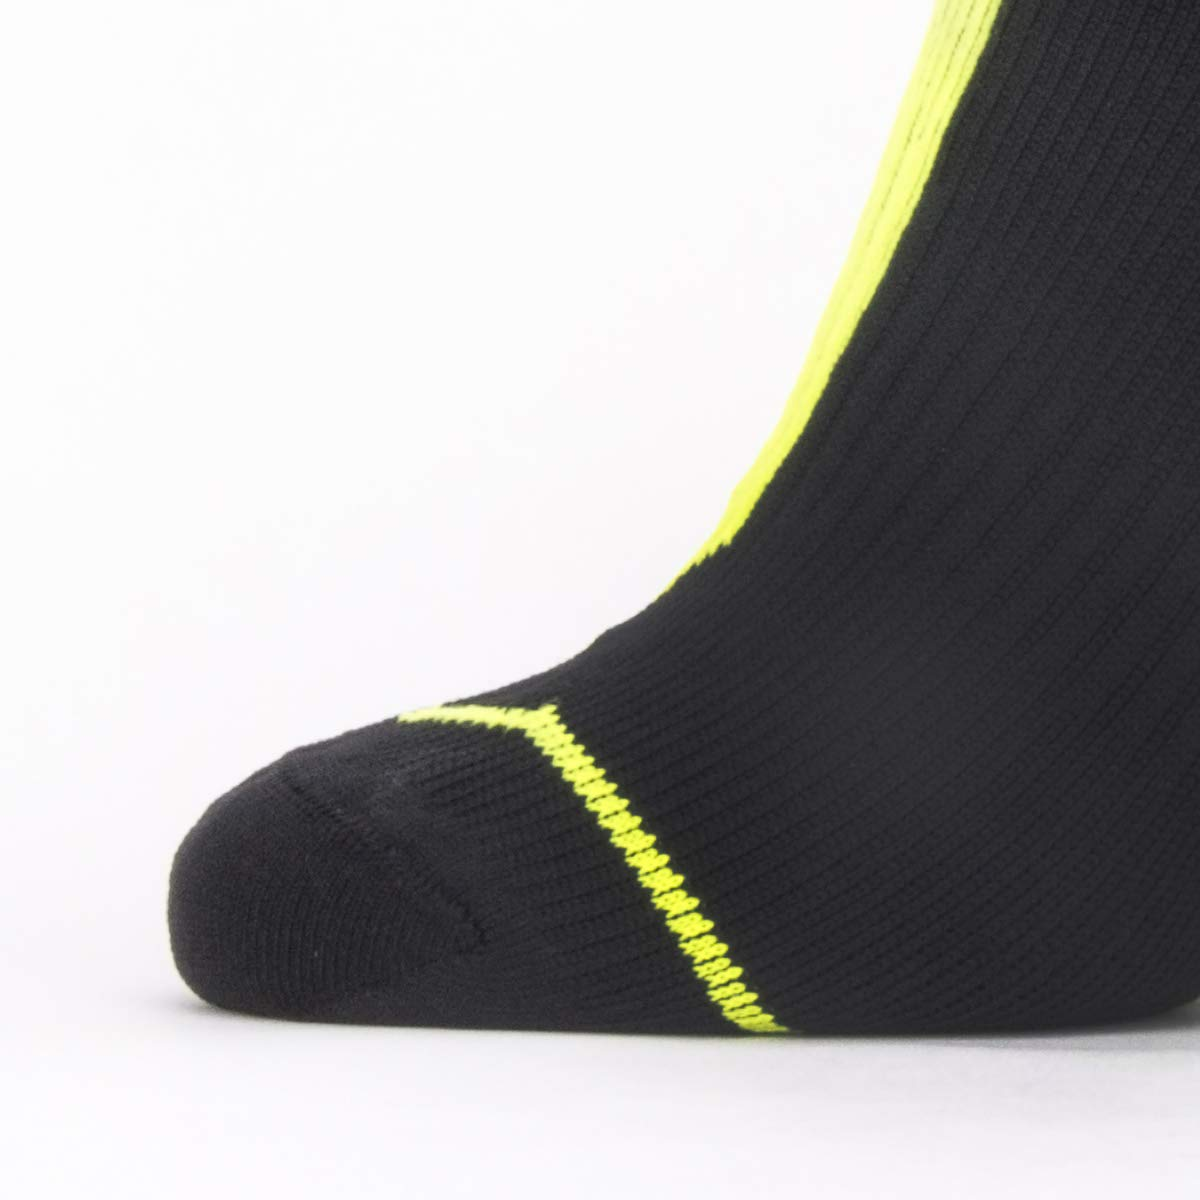 Hombre Grey Marl SealSkinz Waterproof All Weather Ankle Length Calcet/ín Small